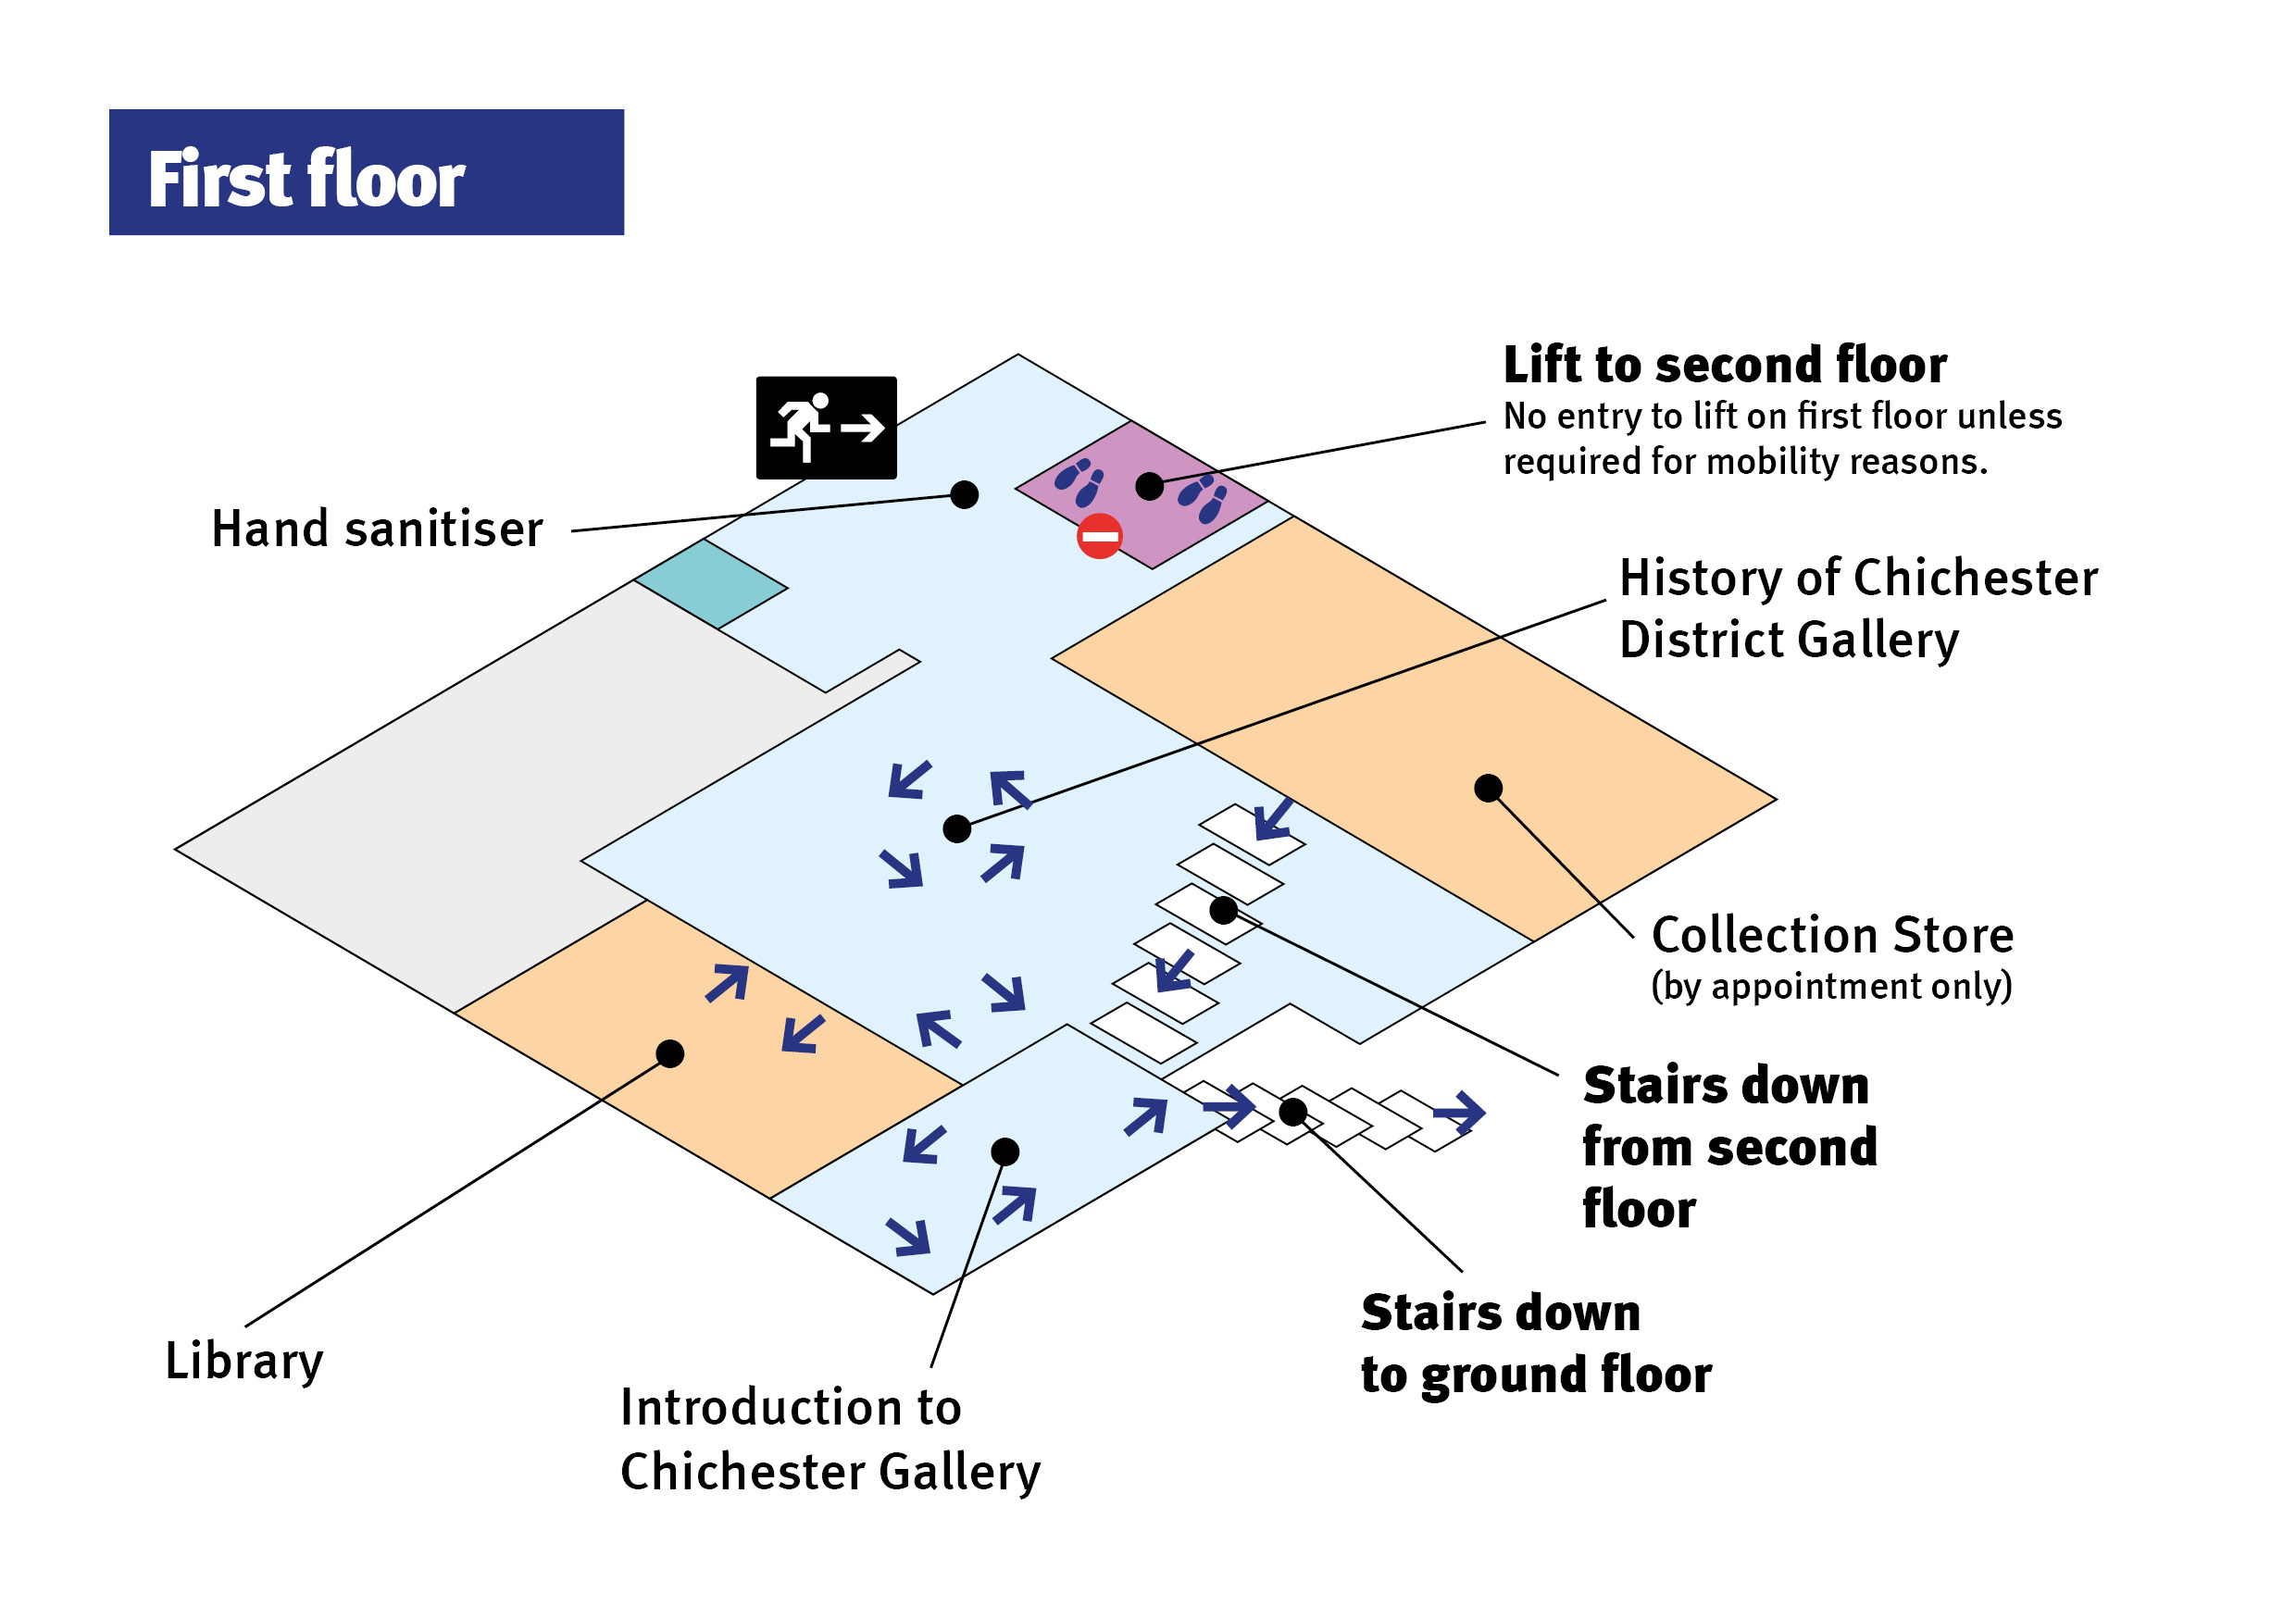 Map of first floor one-way circulation